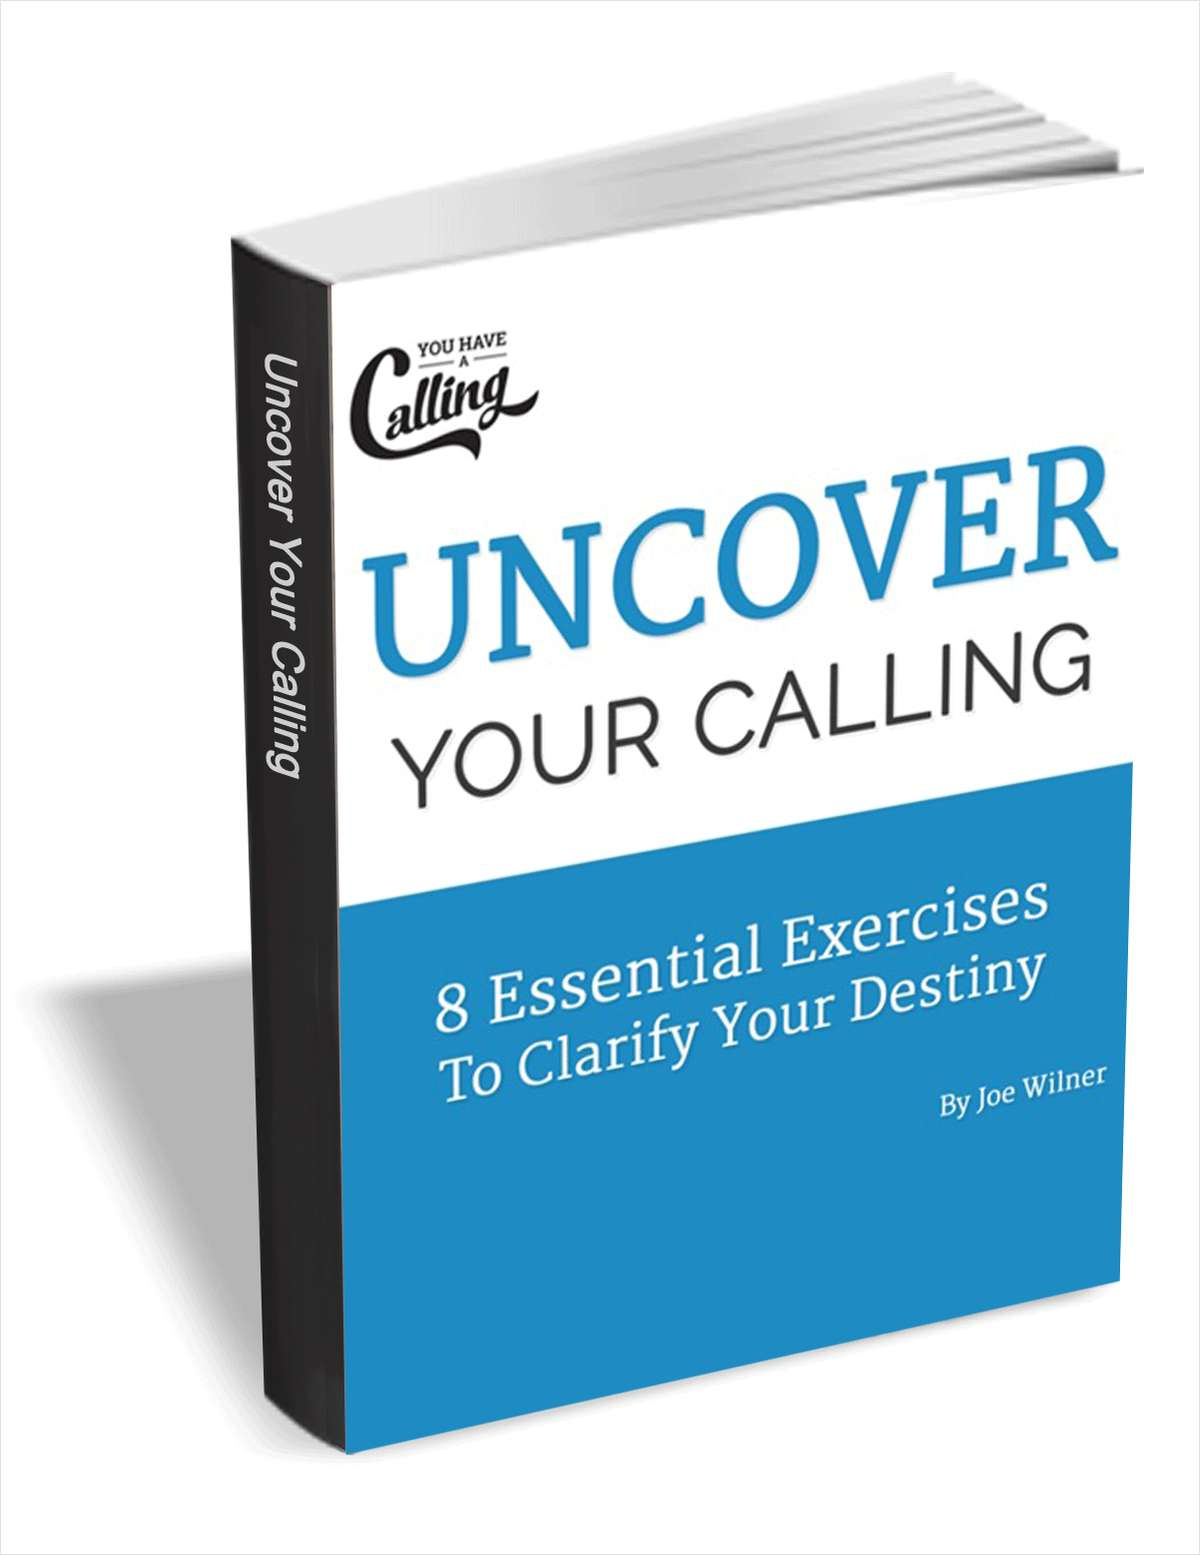 Uncover Your Calling - 8 Essential Exercises To Clarify Your Destiny